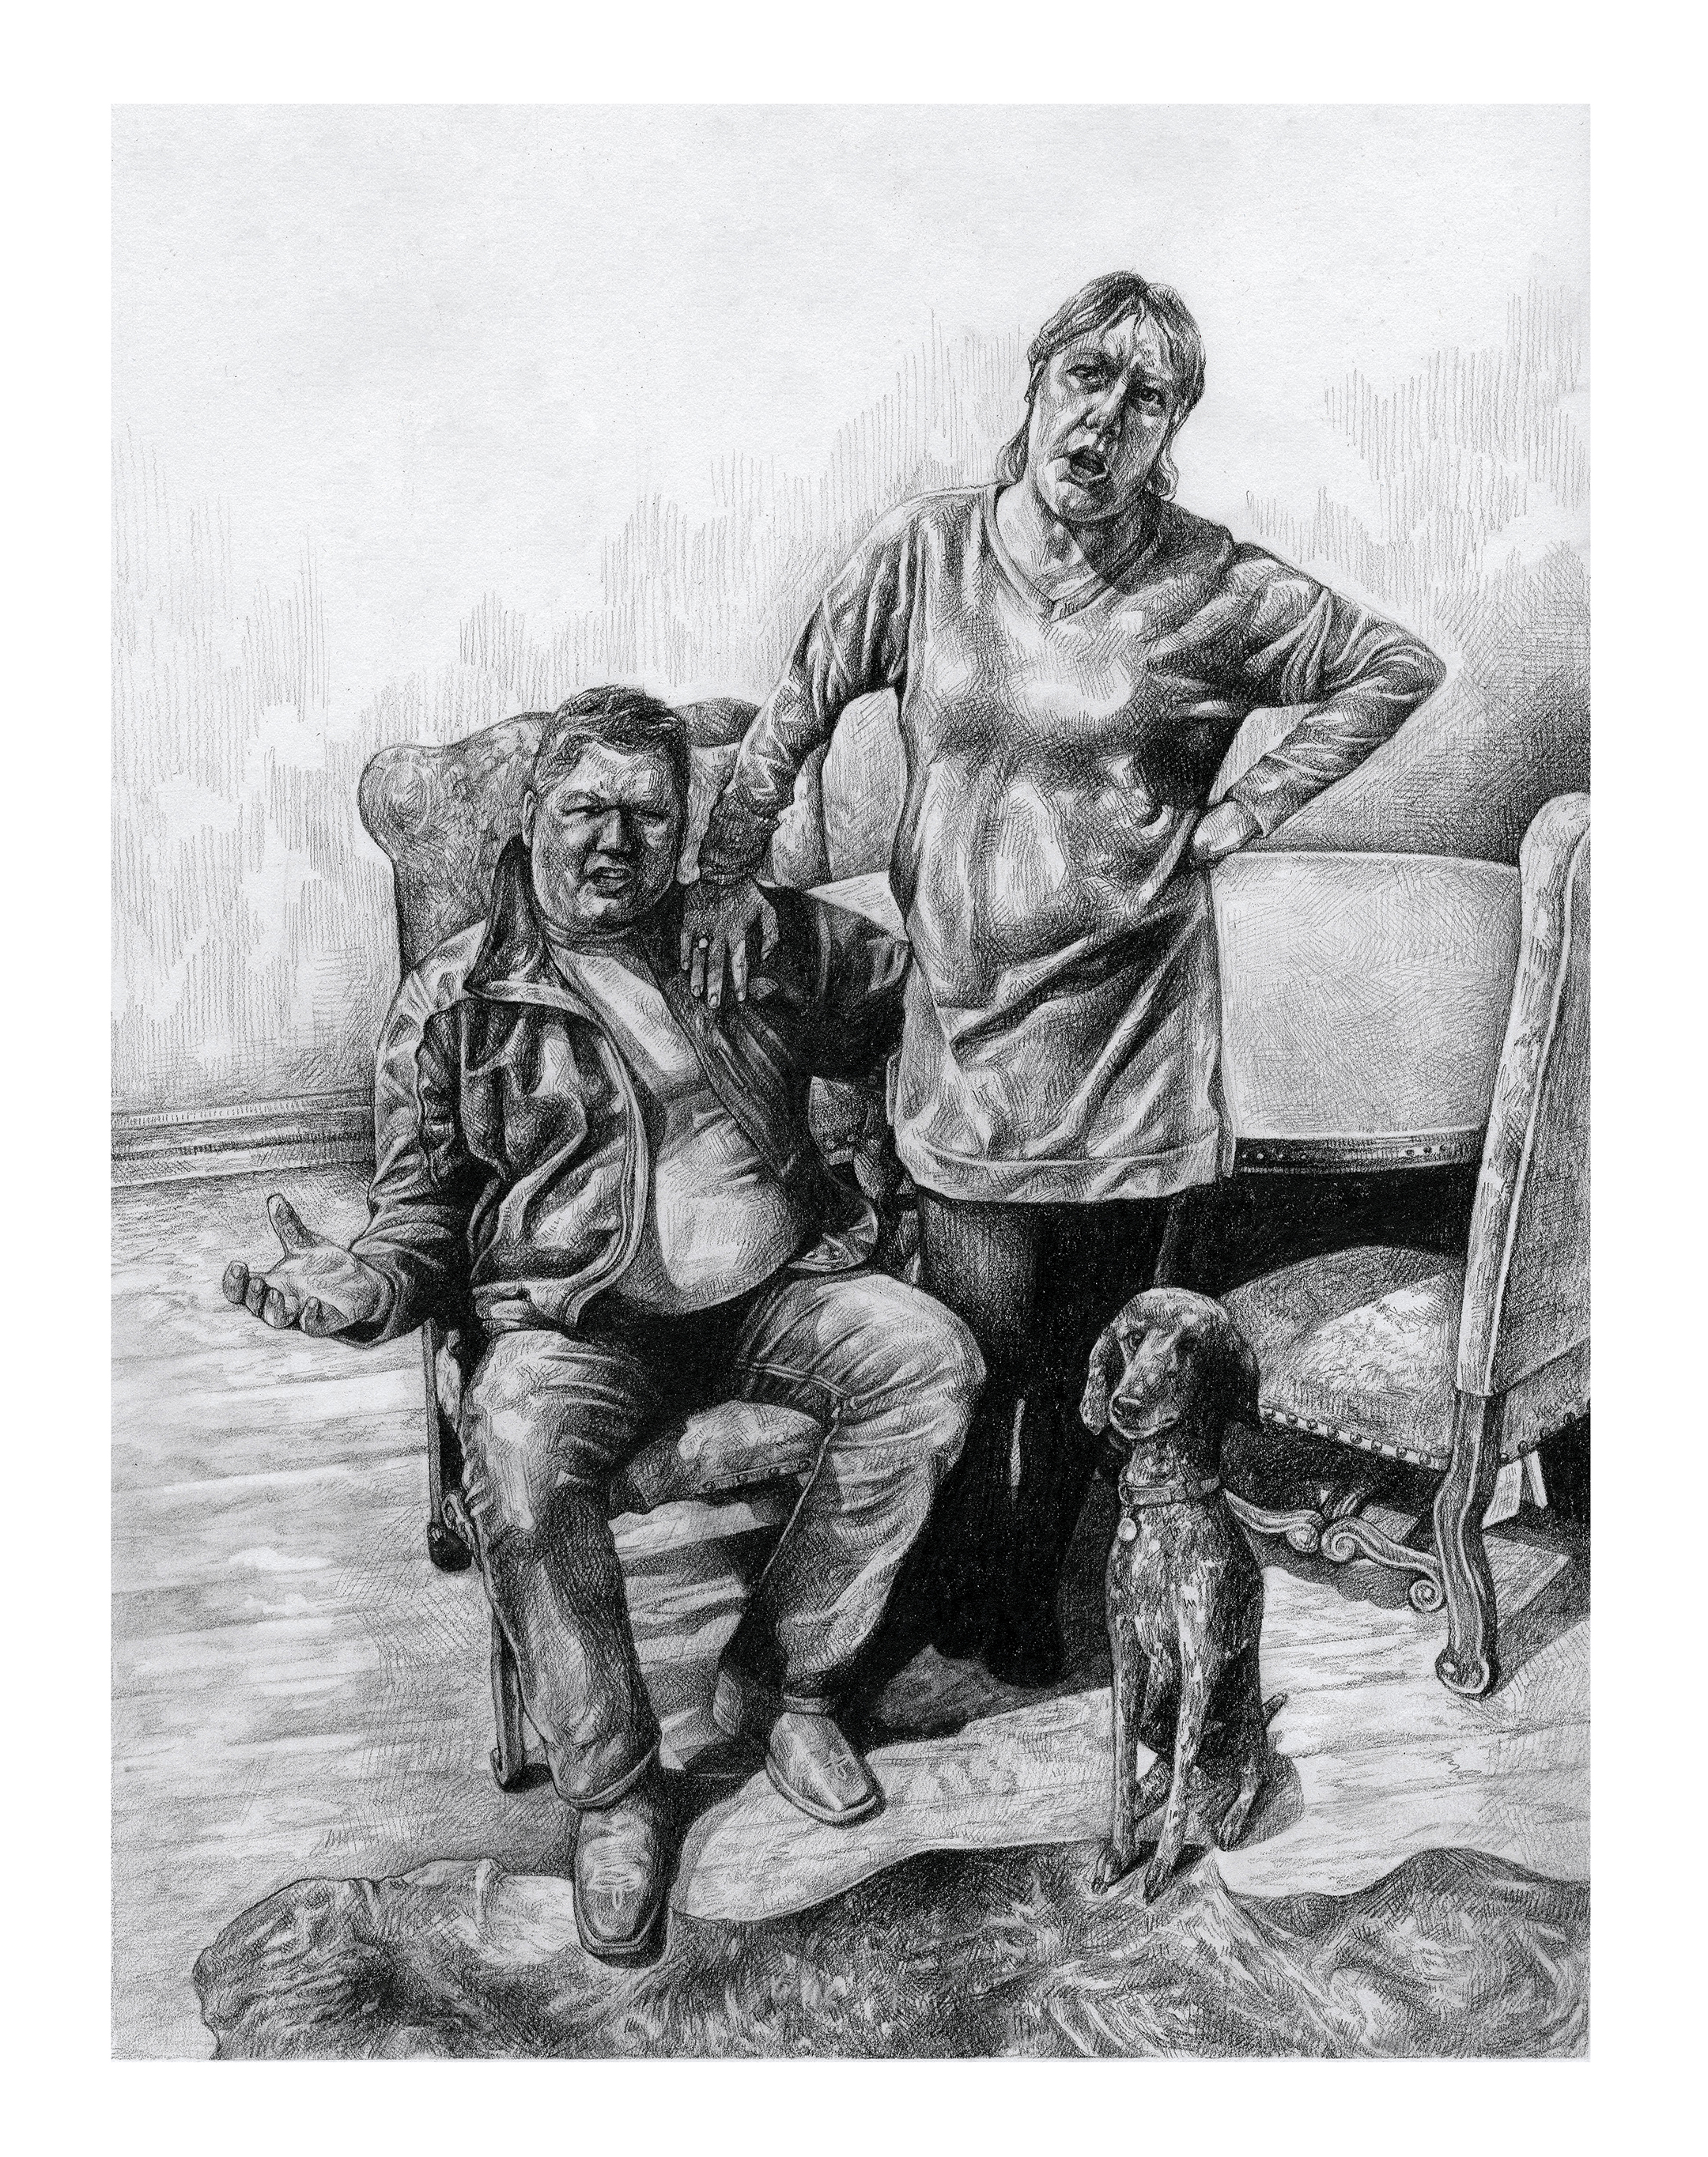 Black and white drawing of a man and a woman, the man sitting and the woman standing, with a dog at their feet